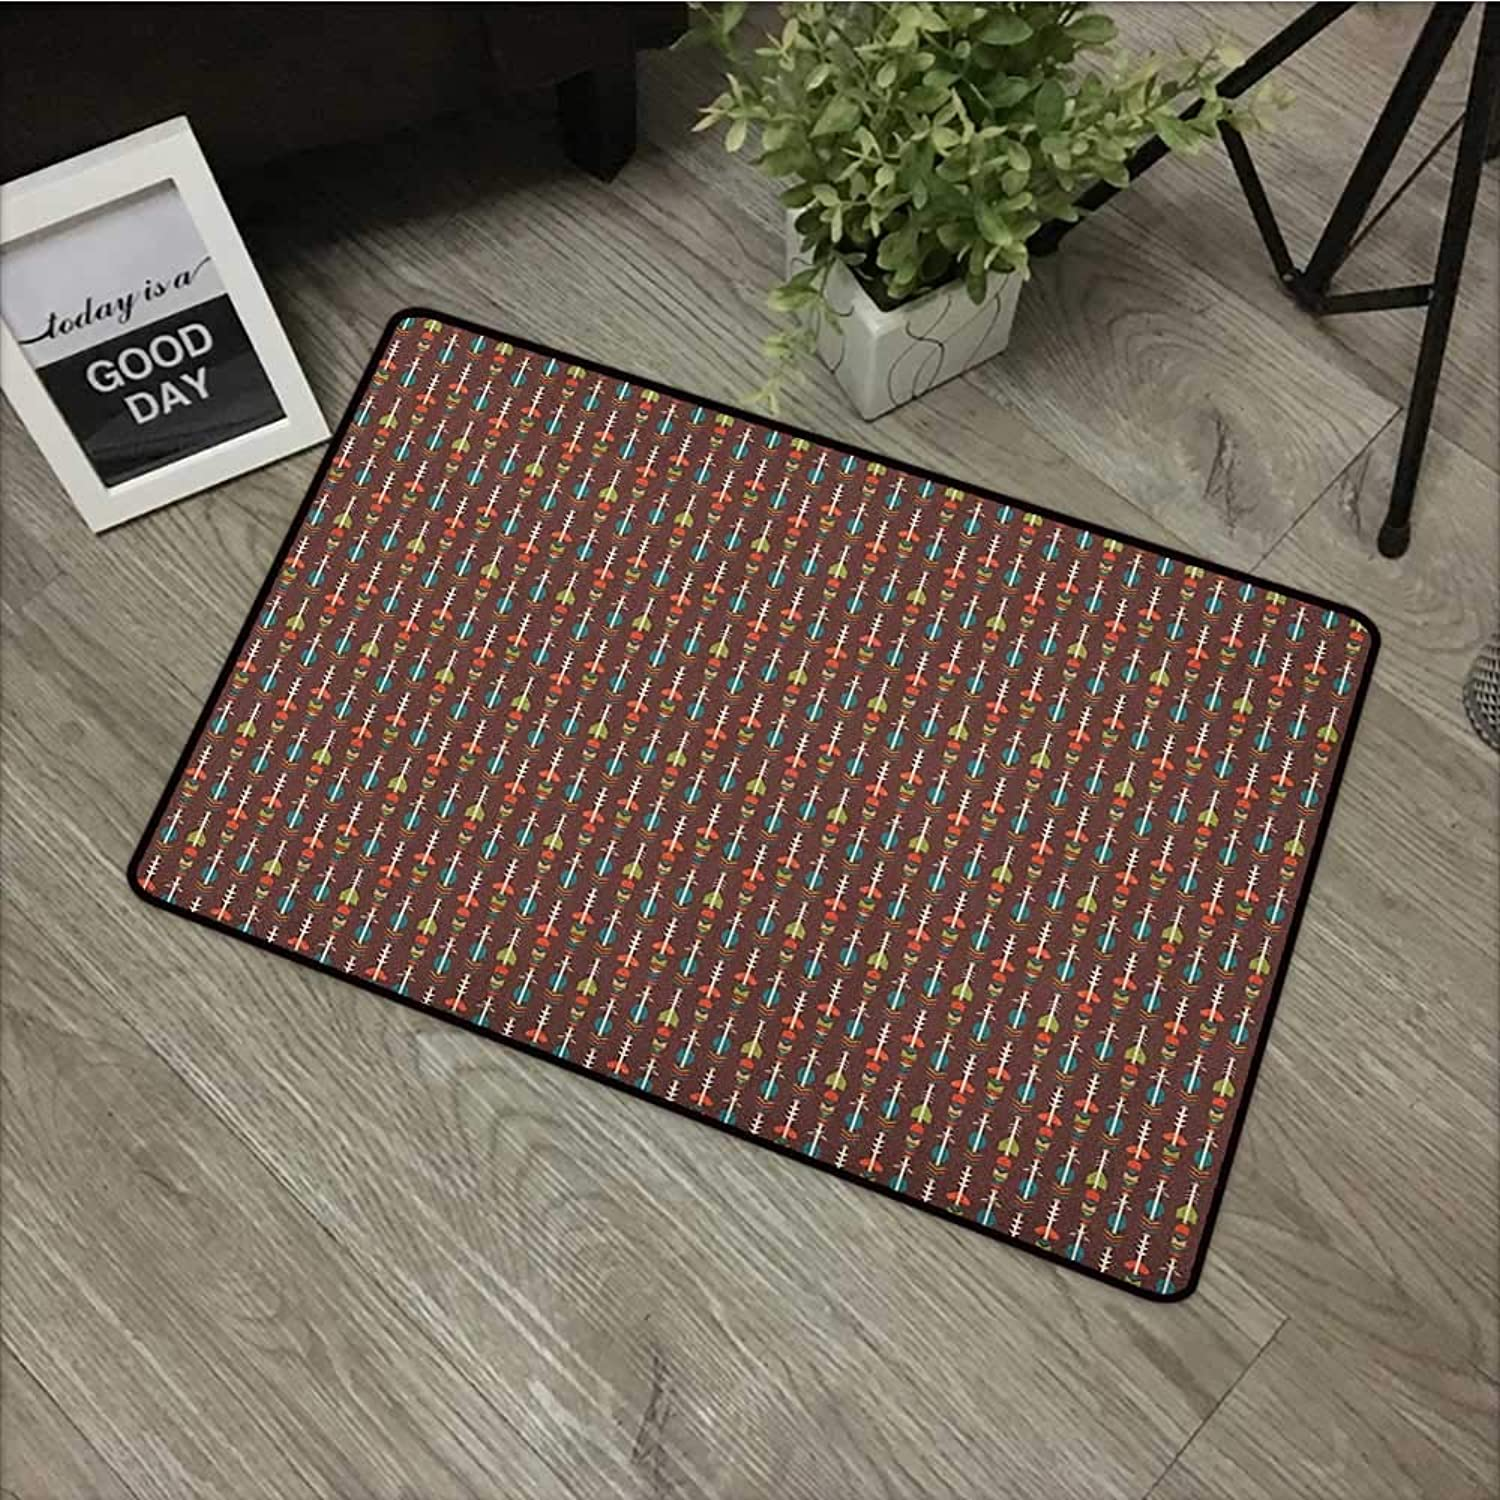 Bathroom mat W31 x L47 INCH Arrow,Ethnic colorful and Abstract Figures with Artistic Geometric Design on Brown Backdrop, Multicolor Easy to Clean, no Deformation, no Fading Non-Slip Door Mat Carpet